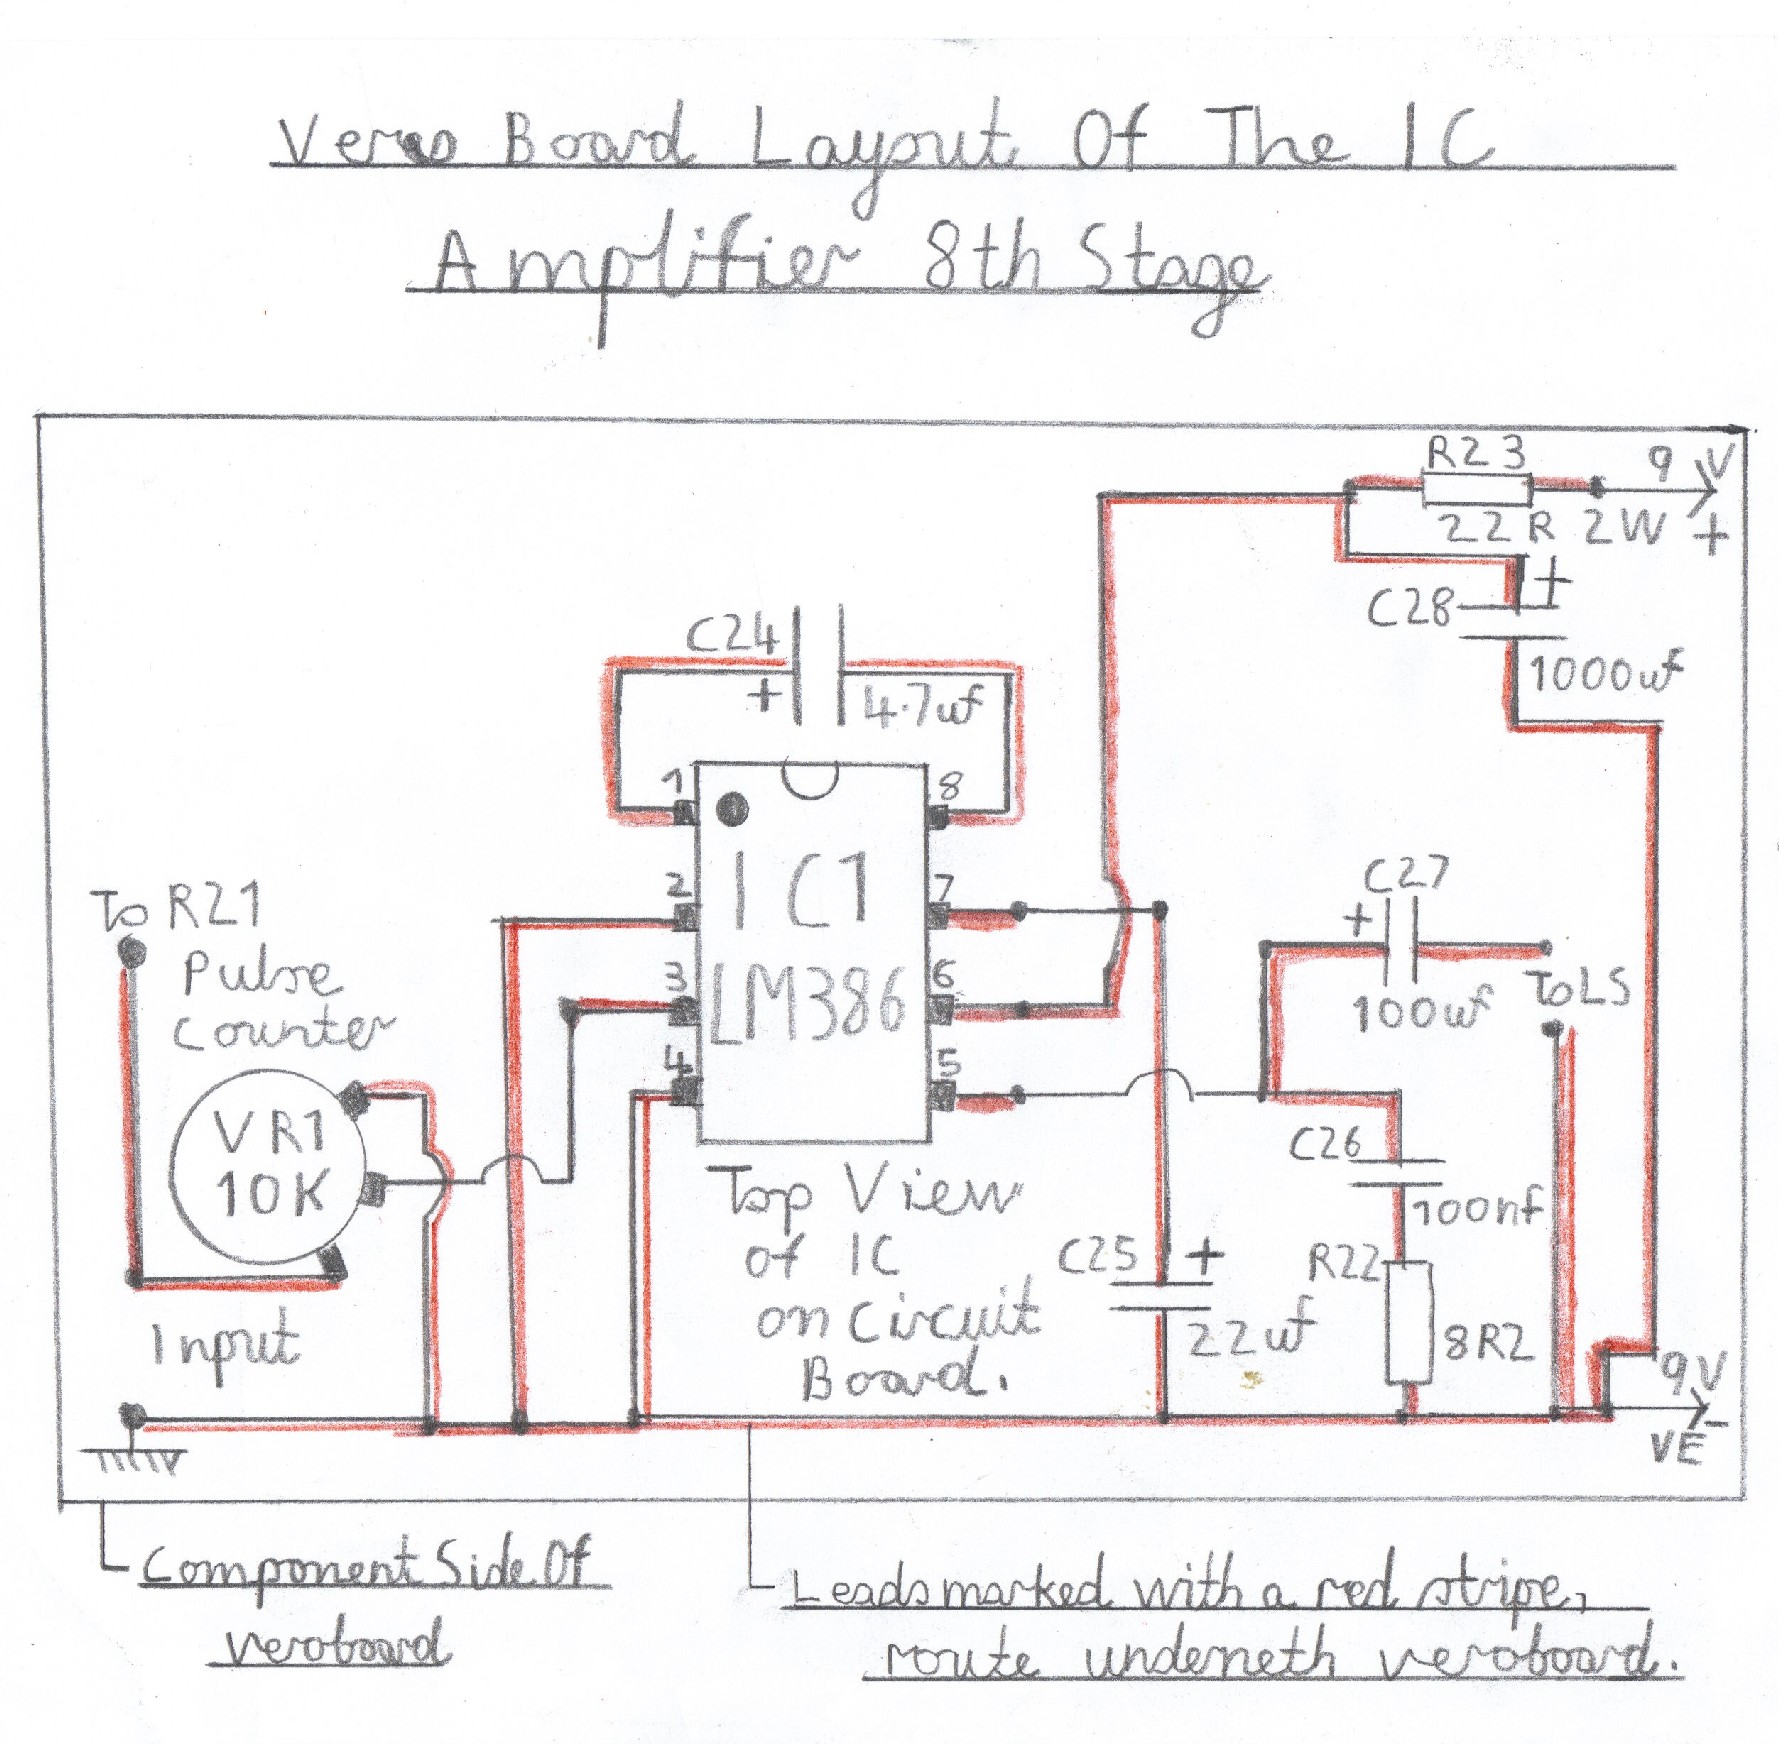 Transistor Fm Superhet Receiver Audio Amplifier Block Diagram Wiring Of The Lm386 This Stage Must Be Constructed And Tested First